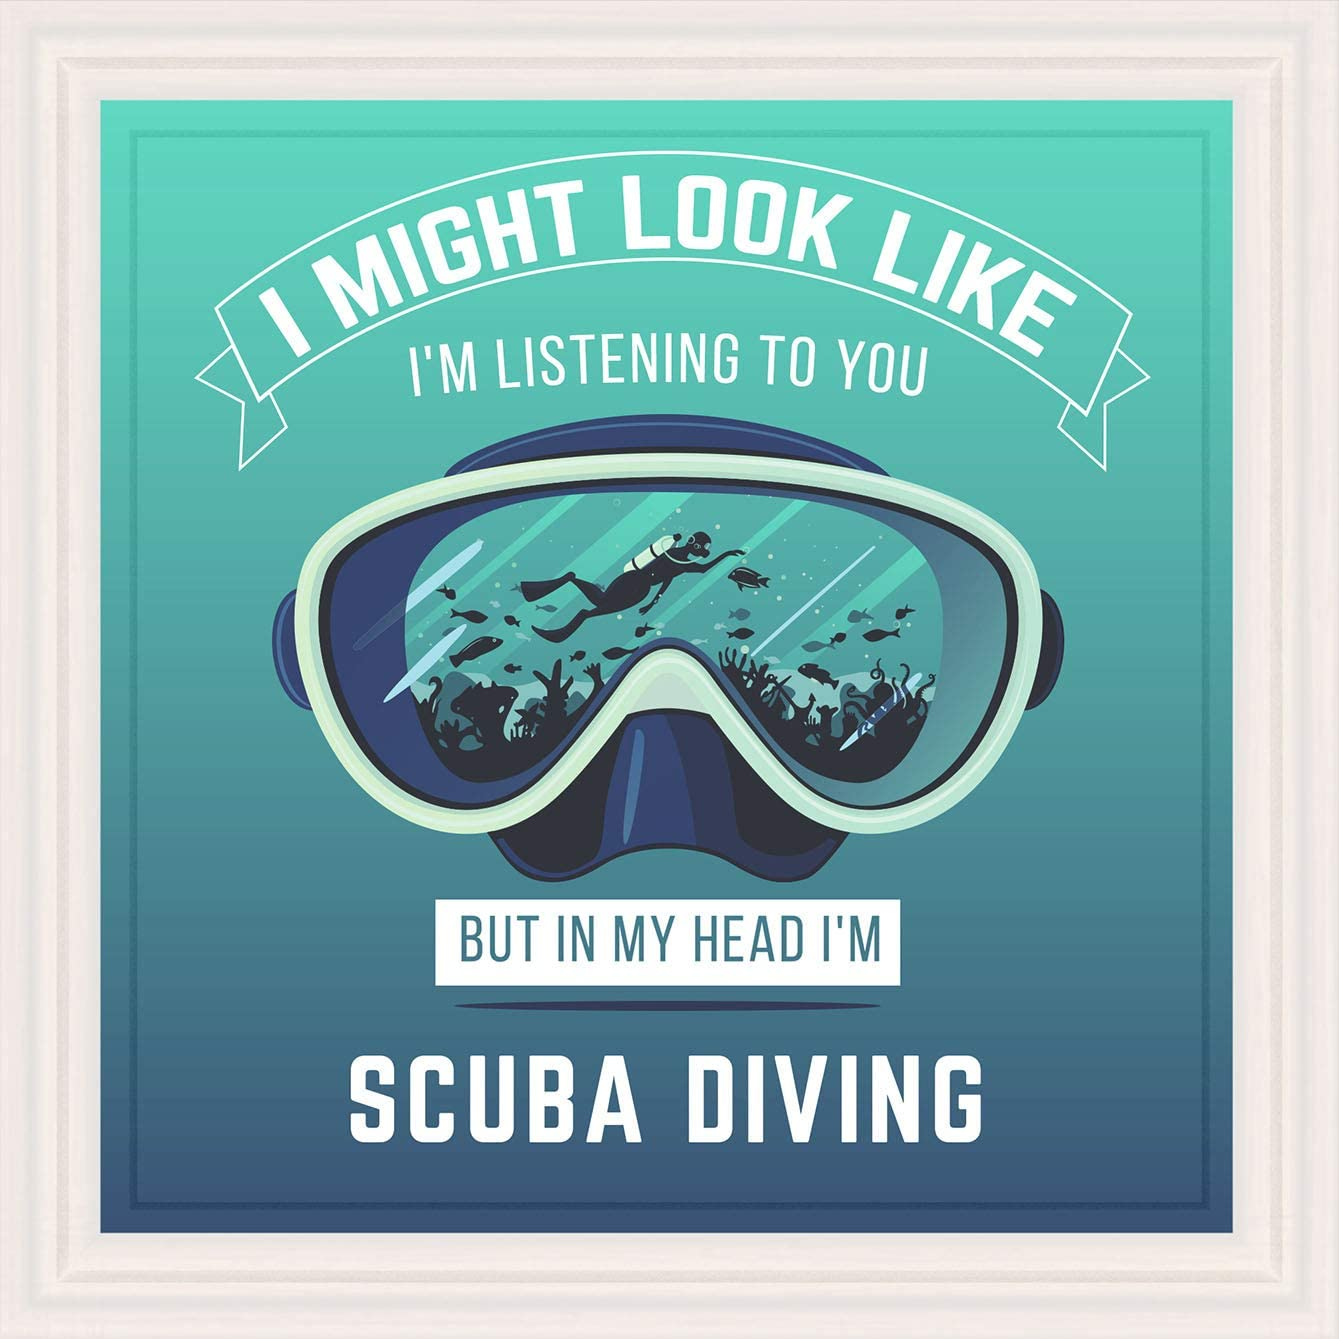 Gifts for Scuba Divers   7x7 Tile Artwork Ideal for Diver   Diving Themed Gifts   Present for Ocean Lovers   Scuba Gift   Scuba Diving Decor